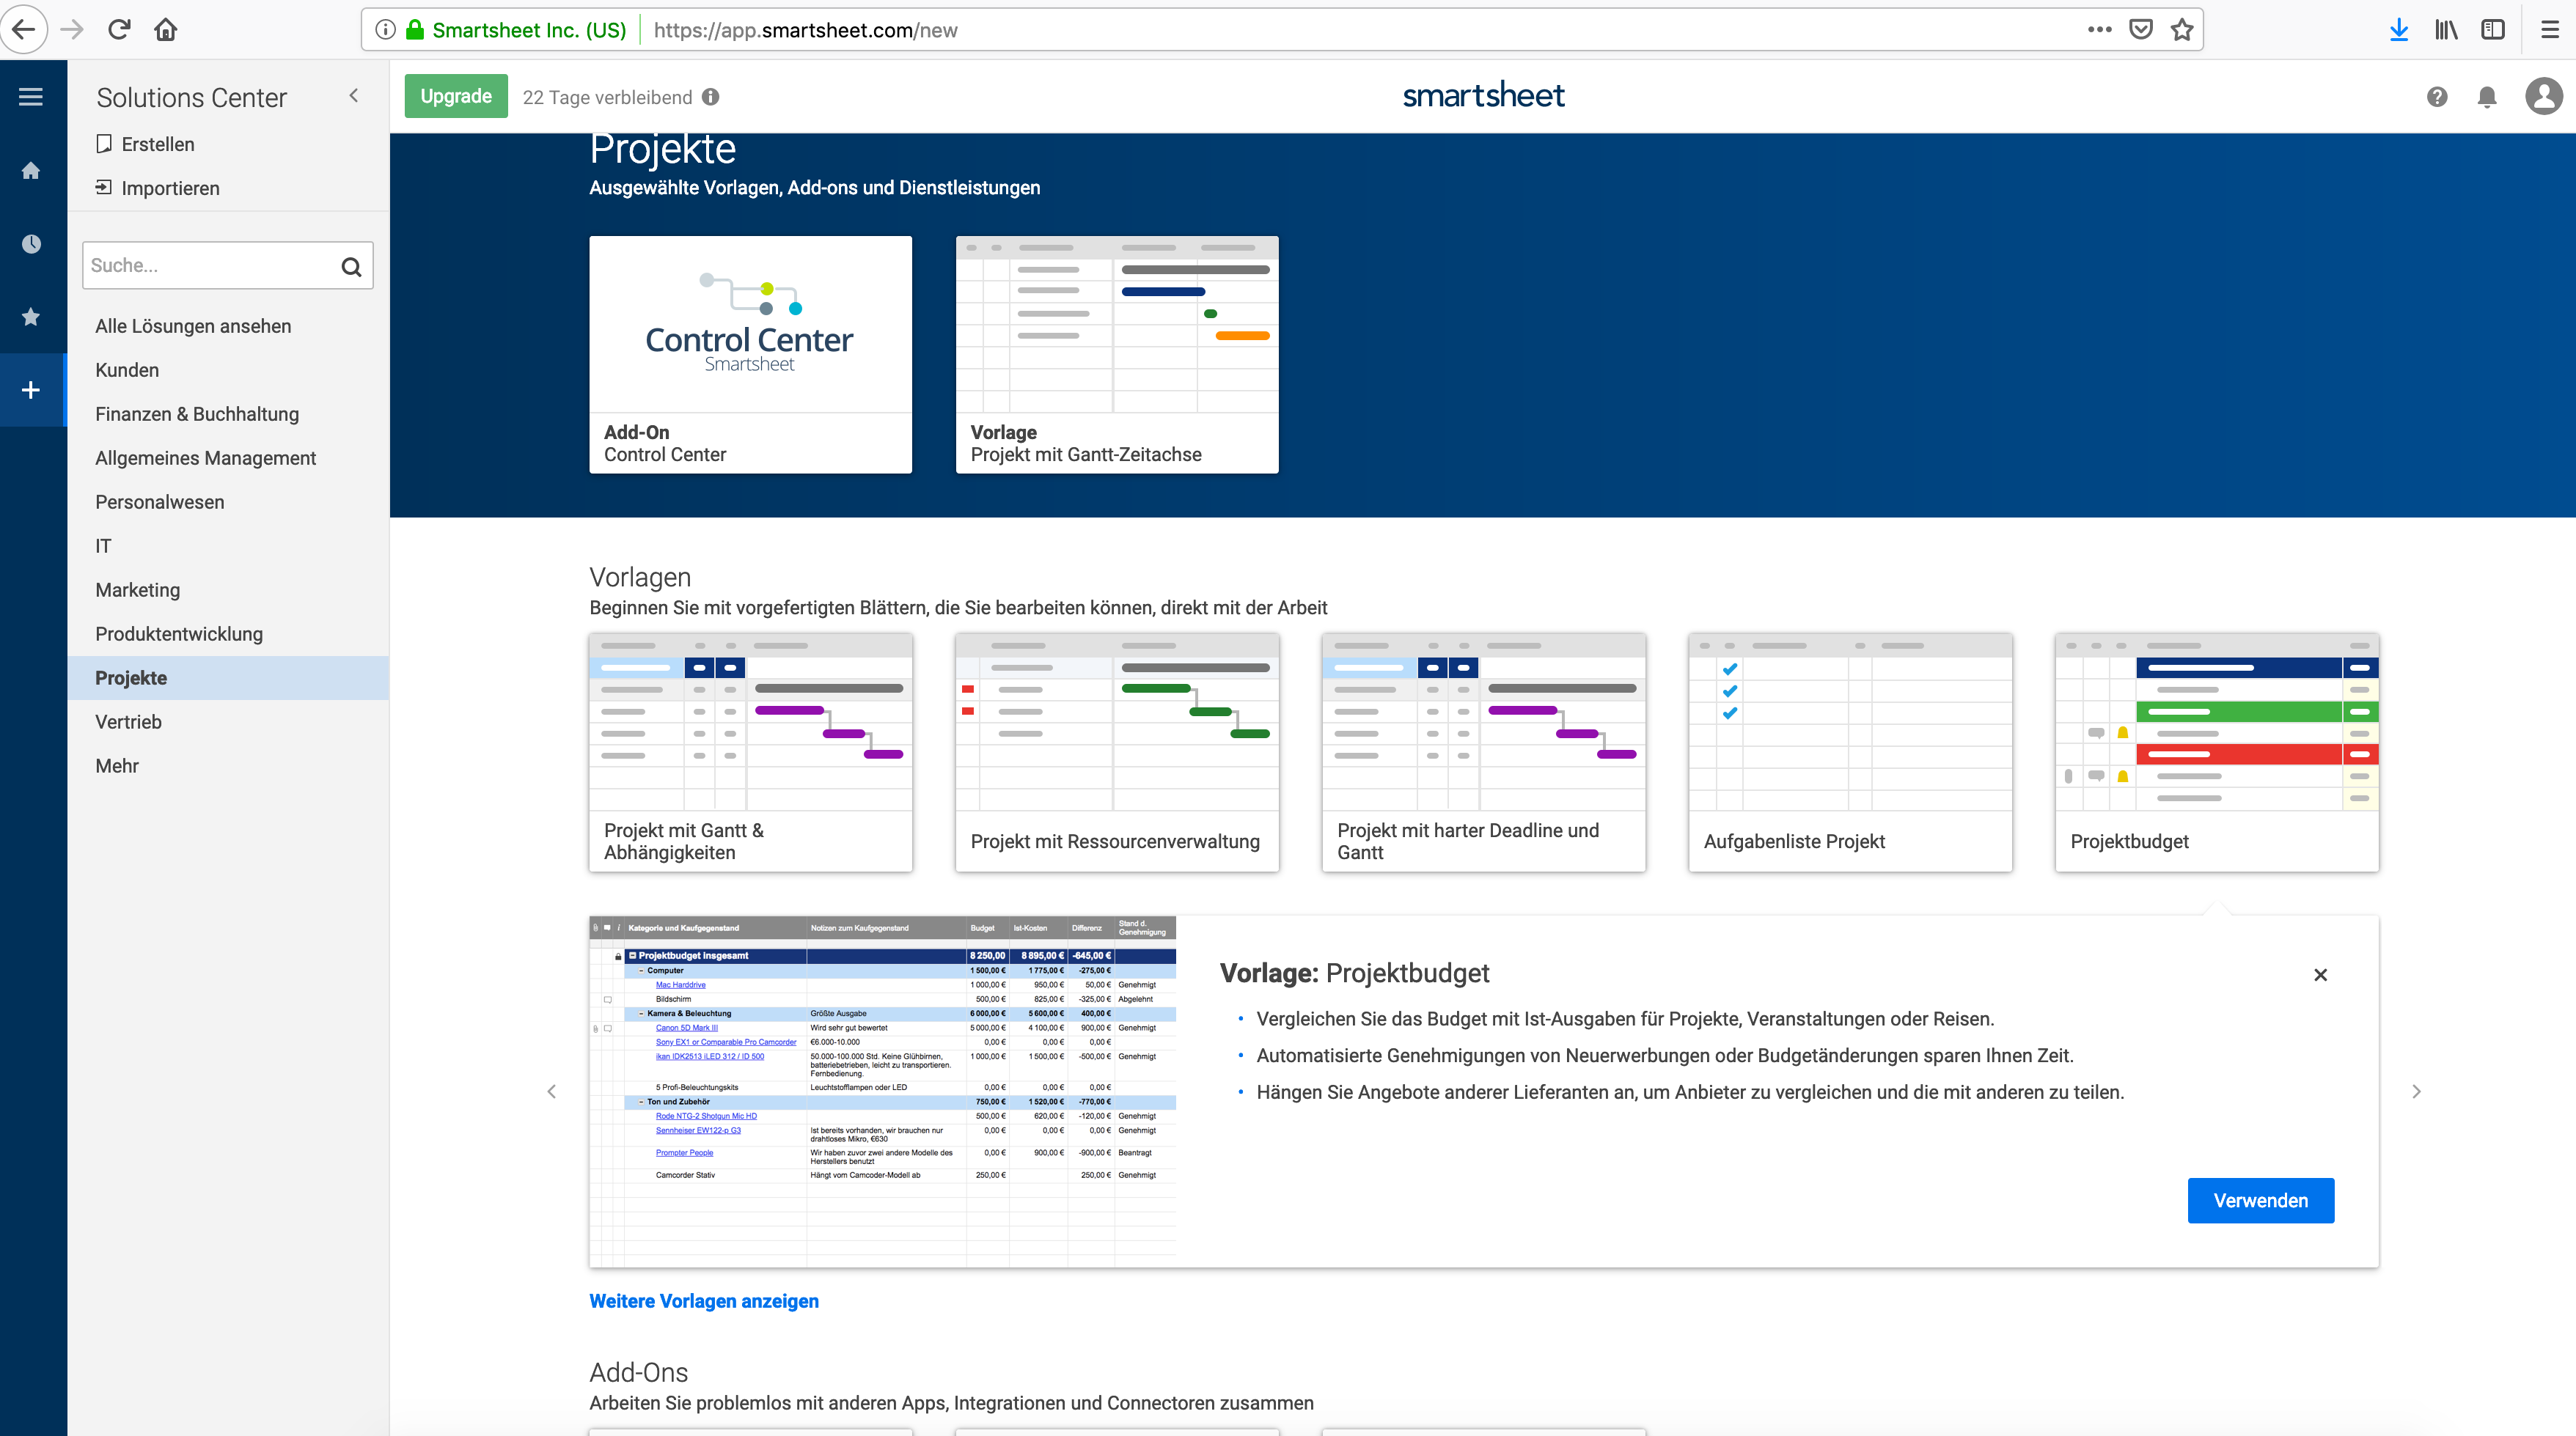 A screenshot of Smartsheet